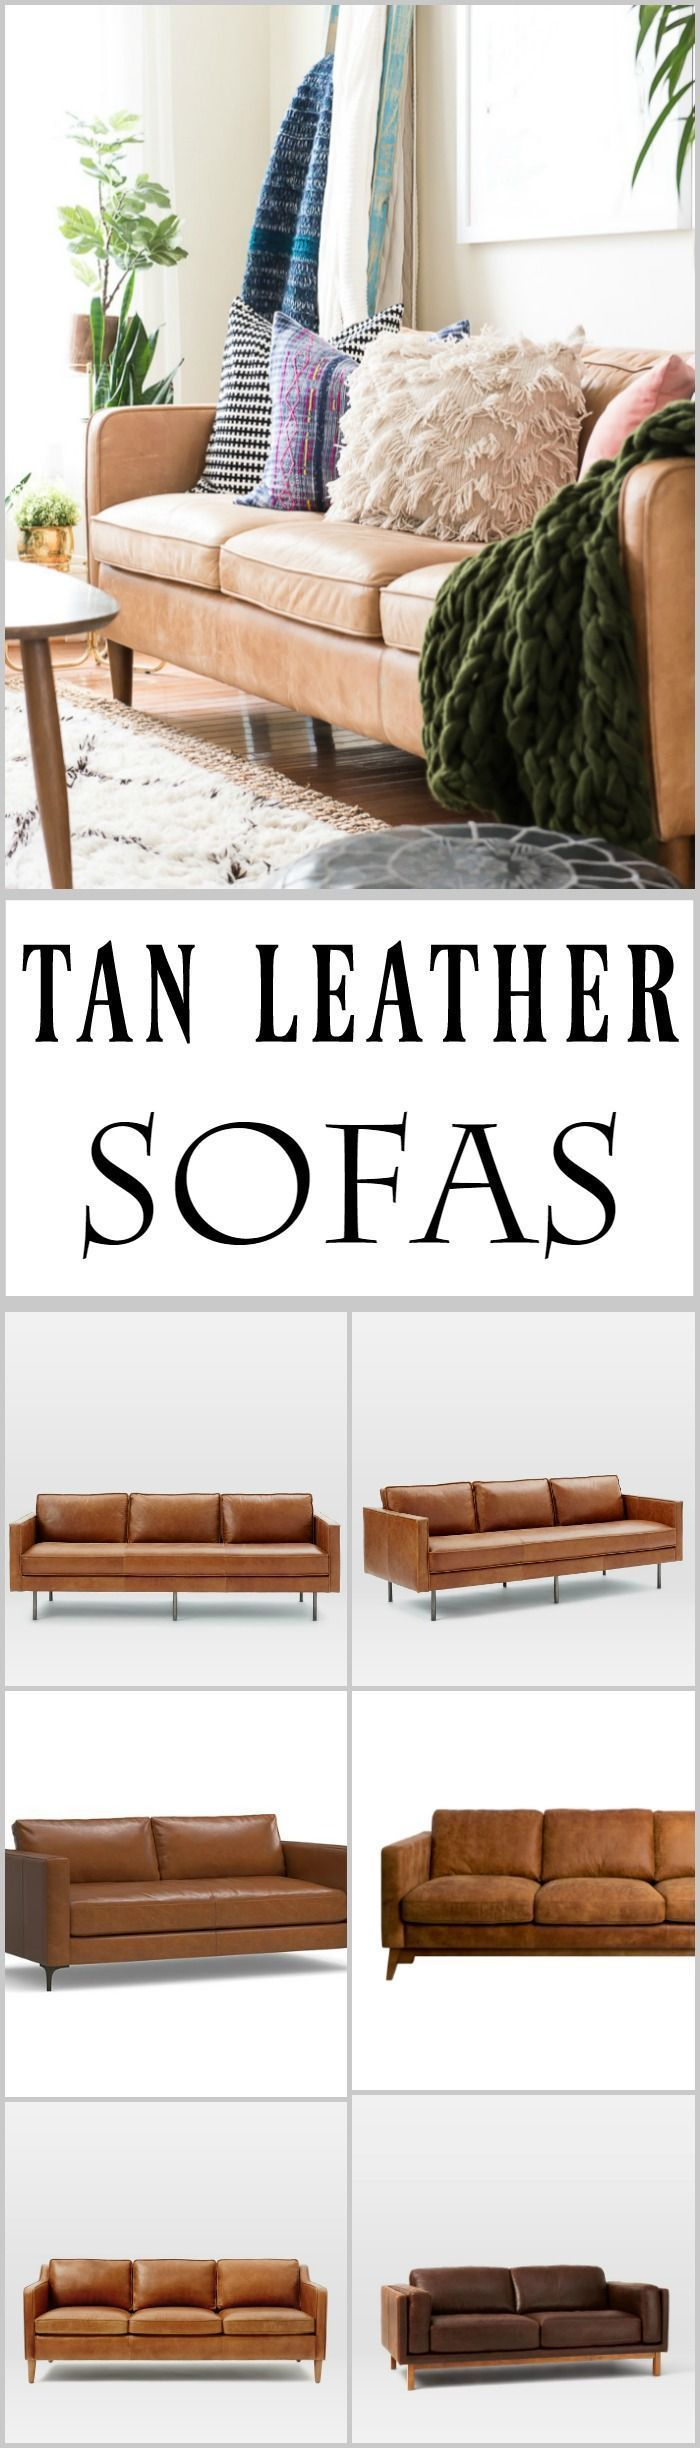 Tan leather sofas are so much in style these http://days.My Hamilton leather sofa is great, and in this post, you can check out some beautiful tan leather sofas.